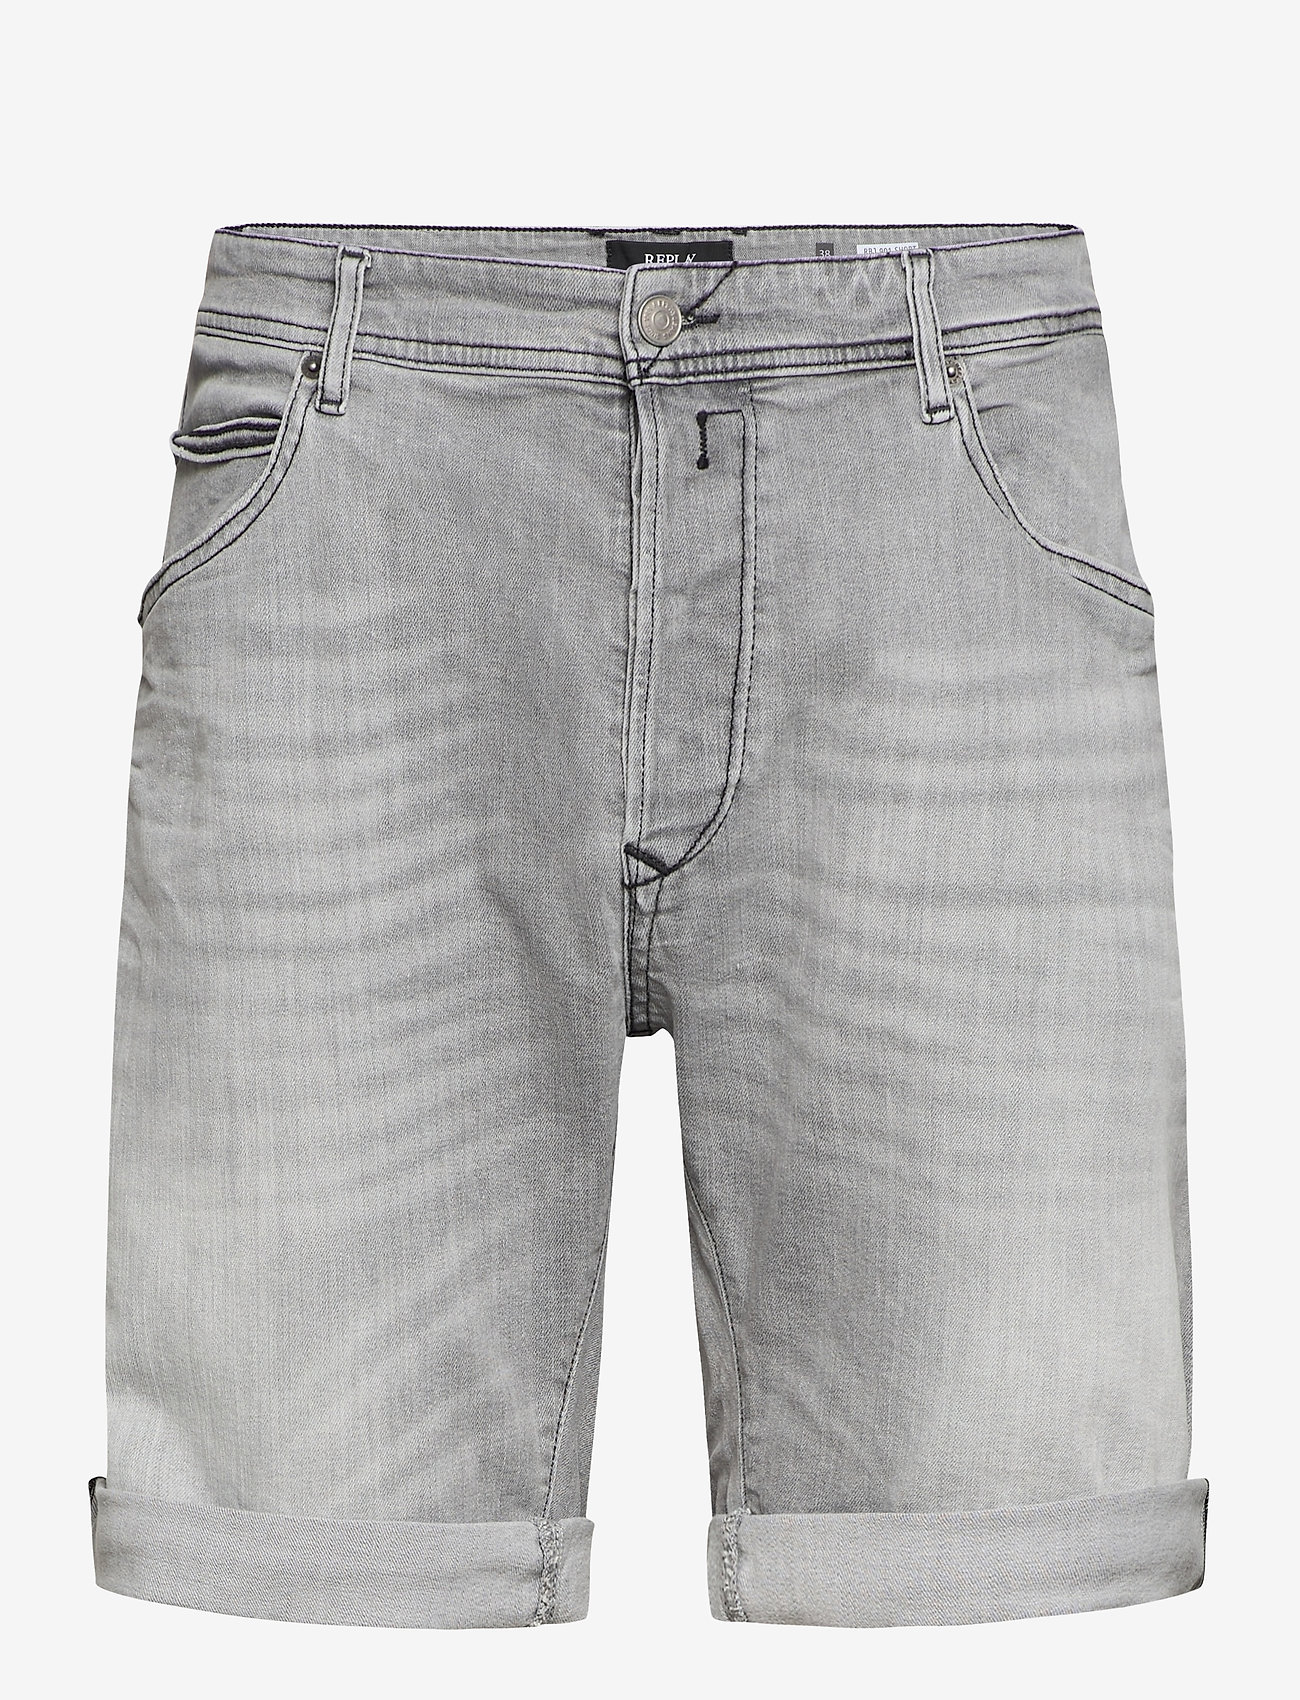 Replay - RBJ.901 SHORT - denim shorts - light grey - 0